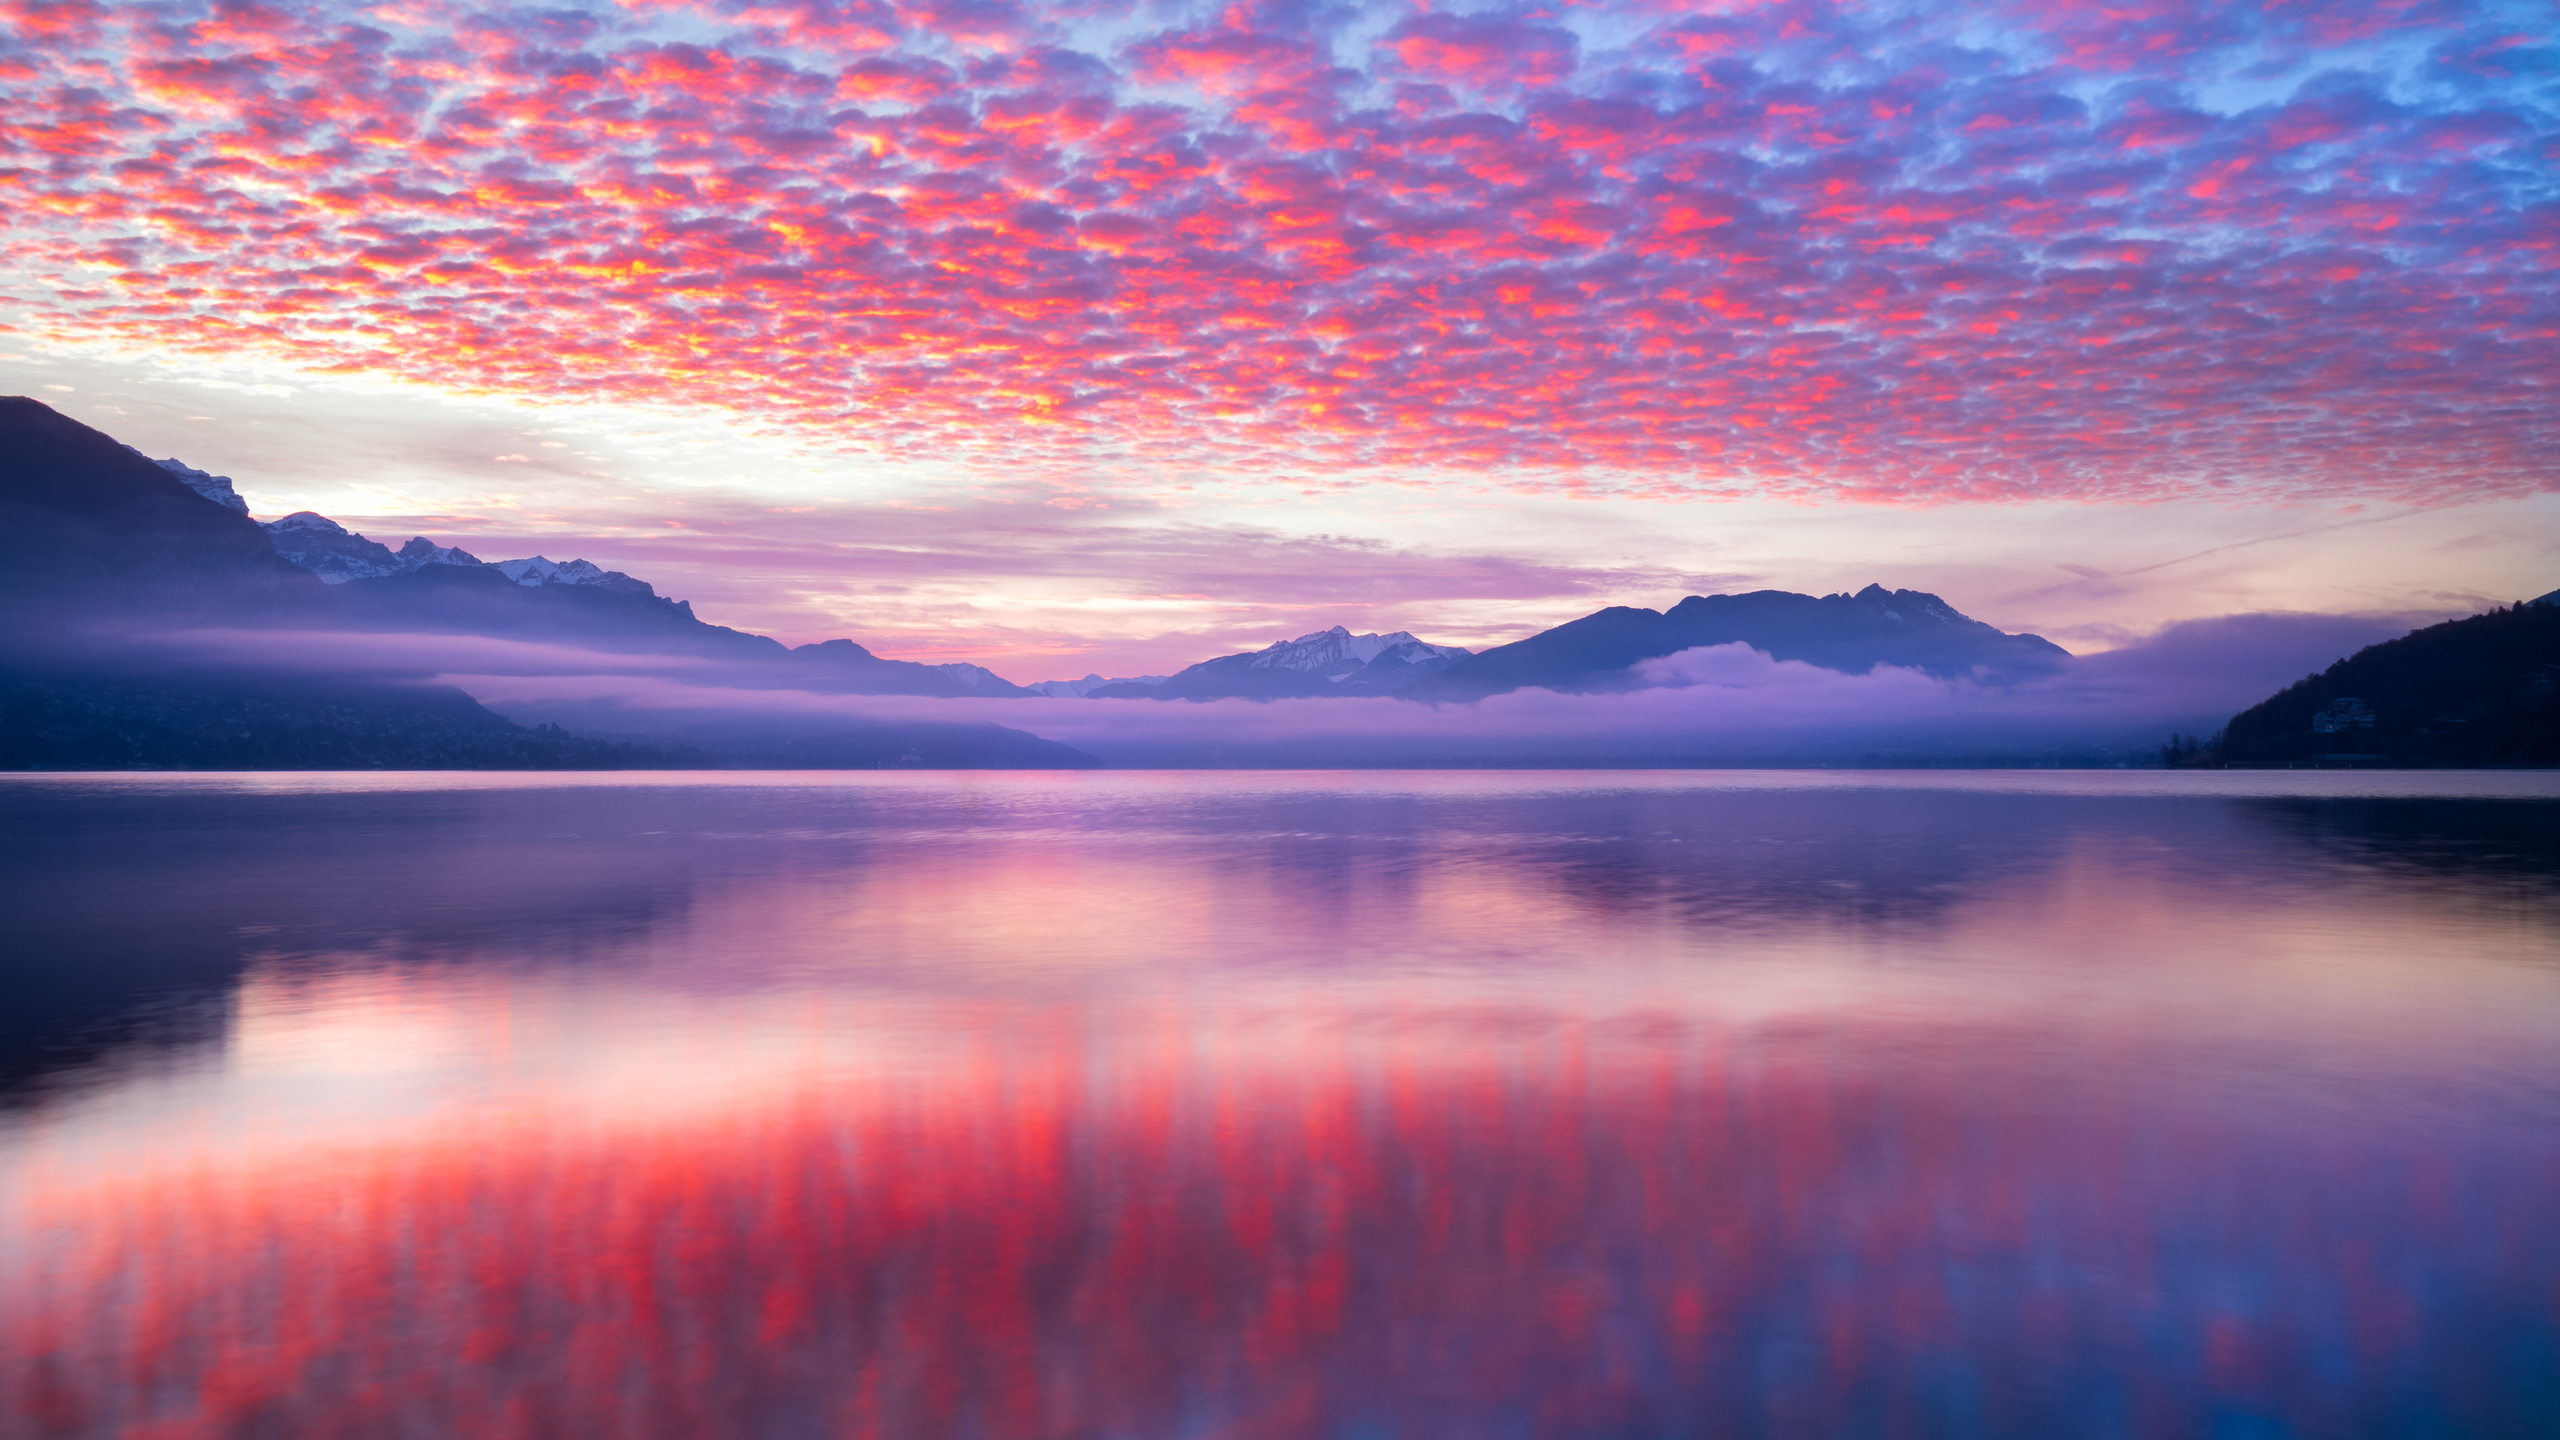 2560x1440 Pink Waves Nature Landscape 5k 1440p Resolution Hd 4k Wallpapers Images Backgrounds Photos And Pictures